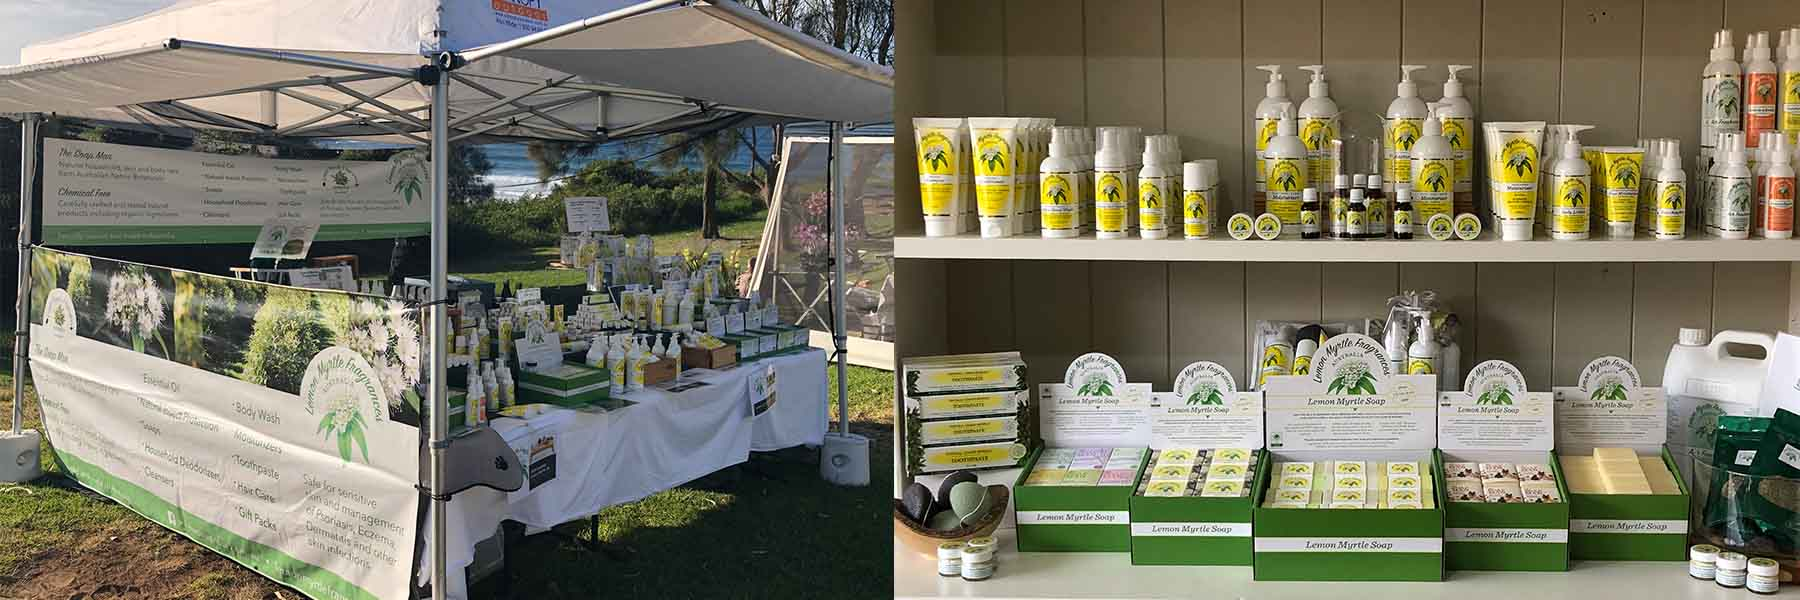 lemon Myrtle products displayed at market